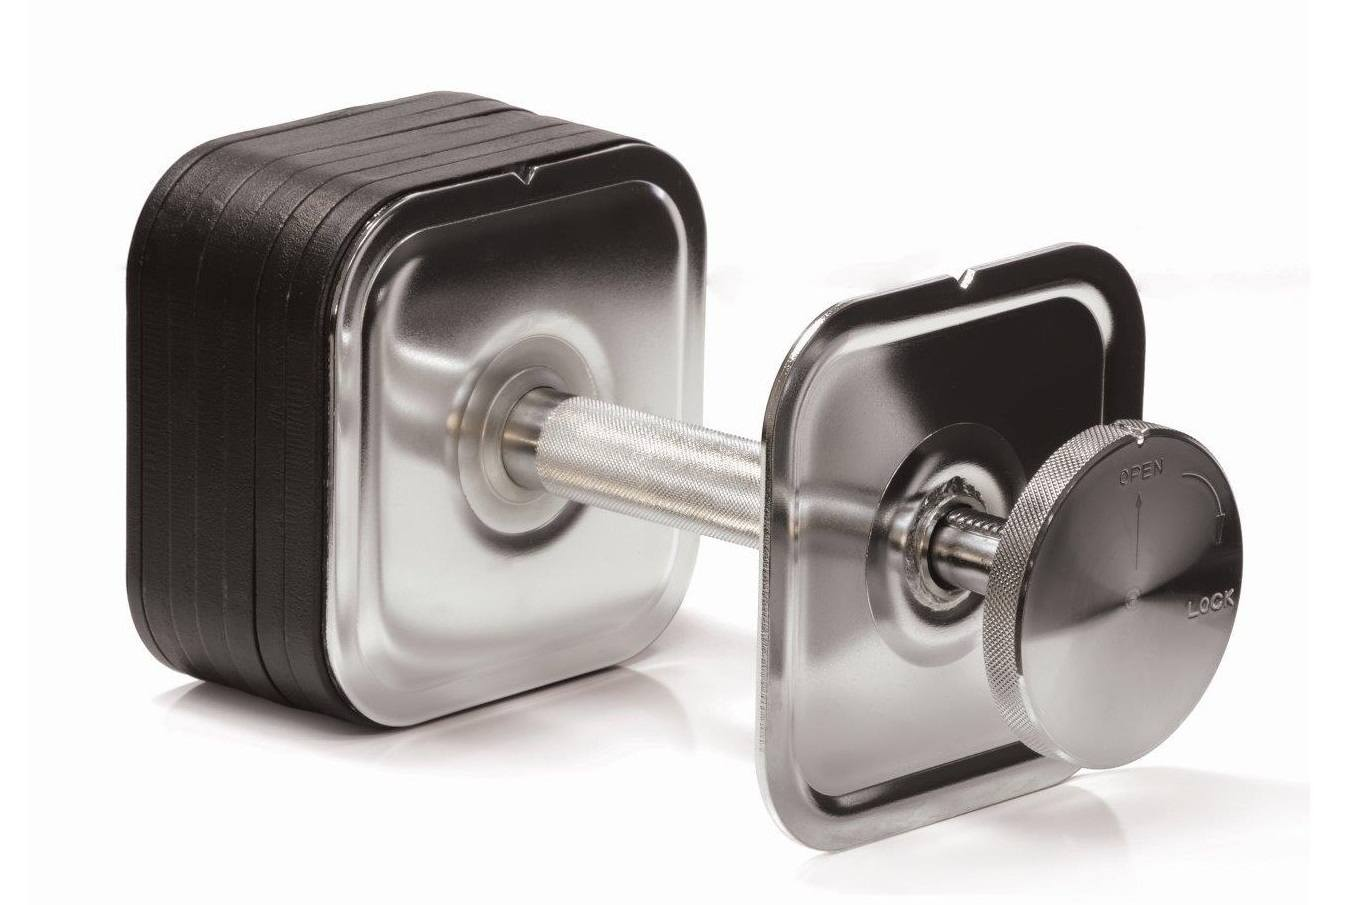 Ironmaster adjustable dumbbells